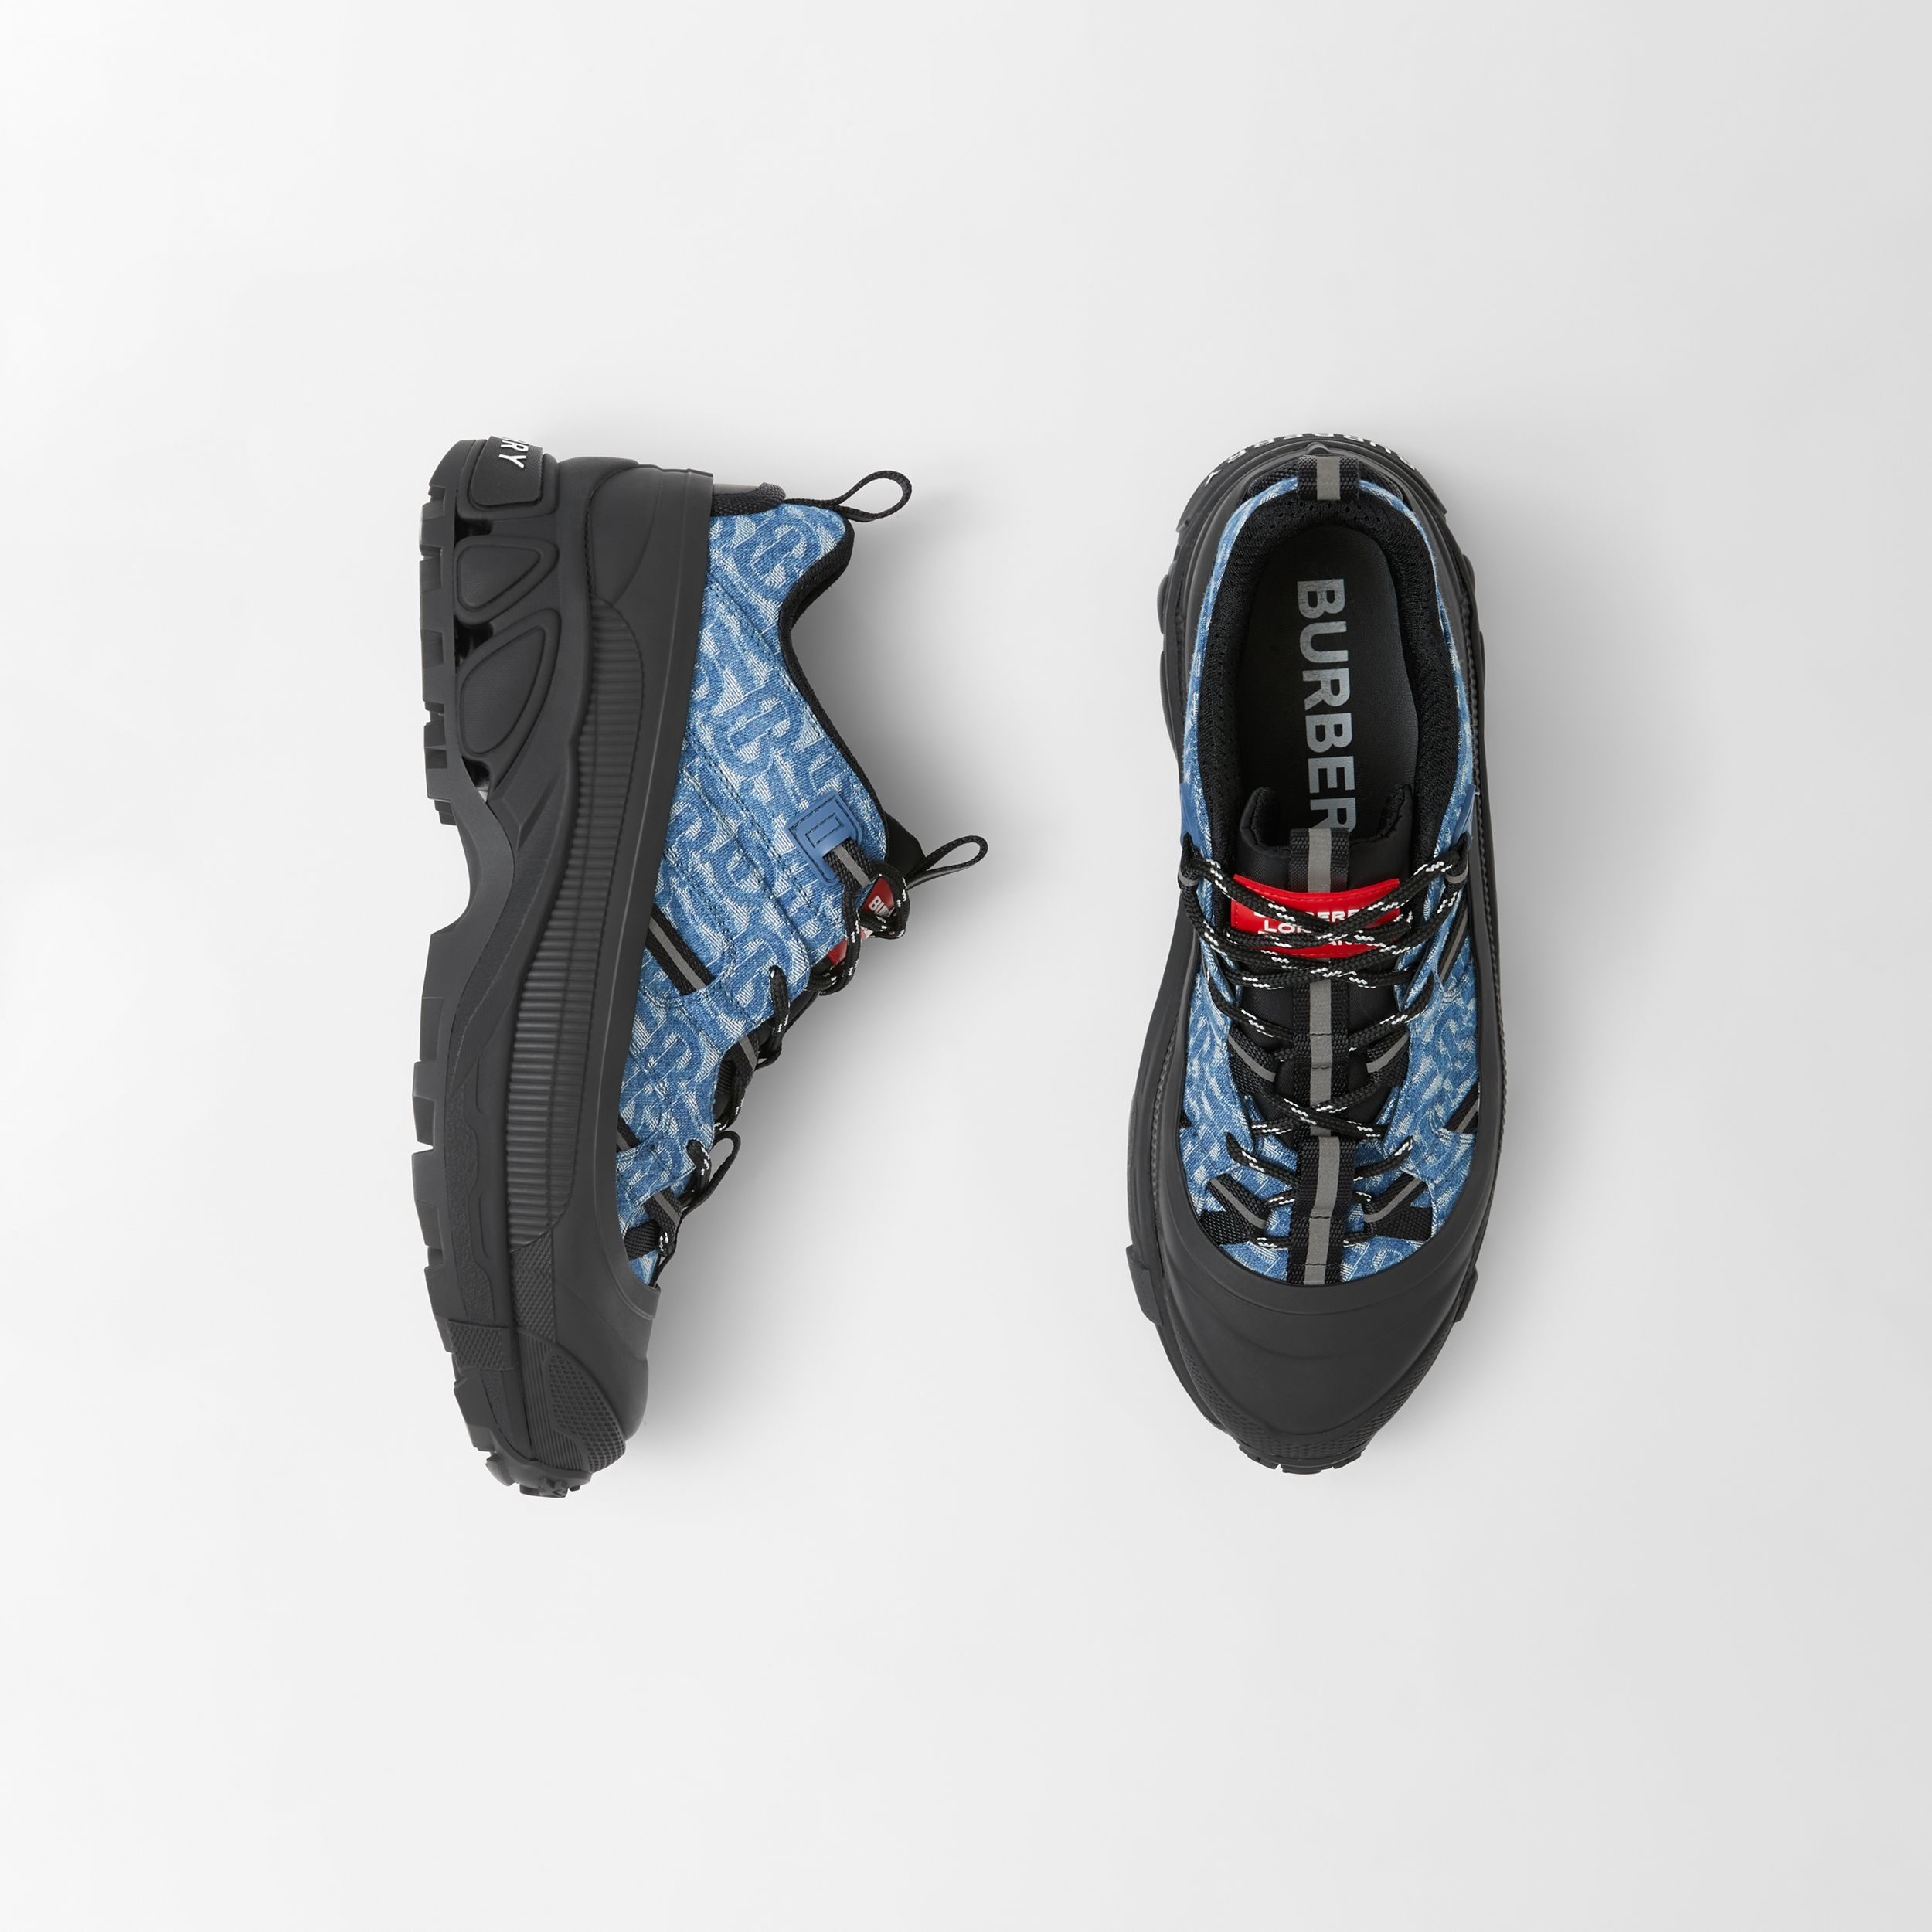 Monogram Print Denim and Leather Arthur Sneakers in Black/blue - Men | Burberry - 1